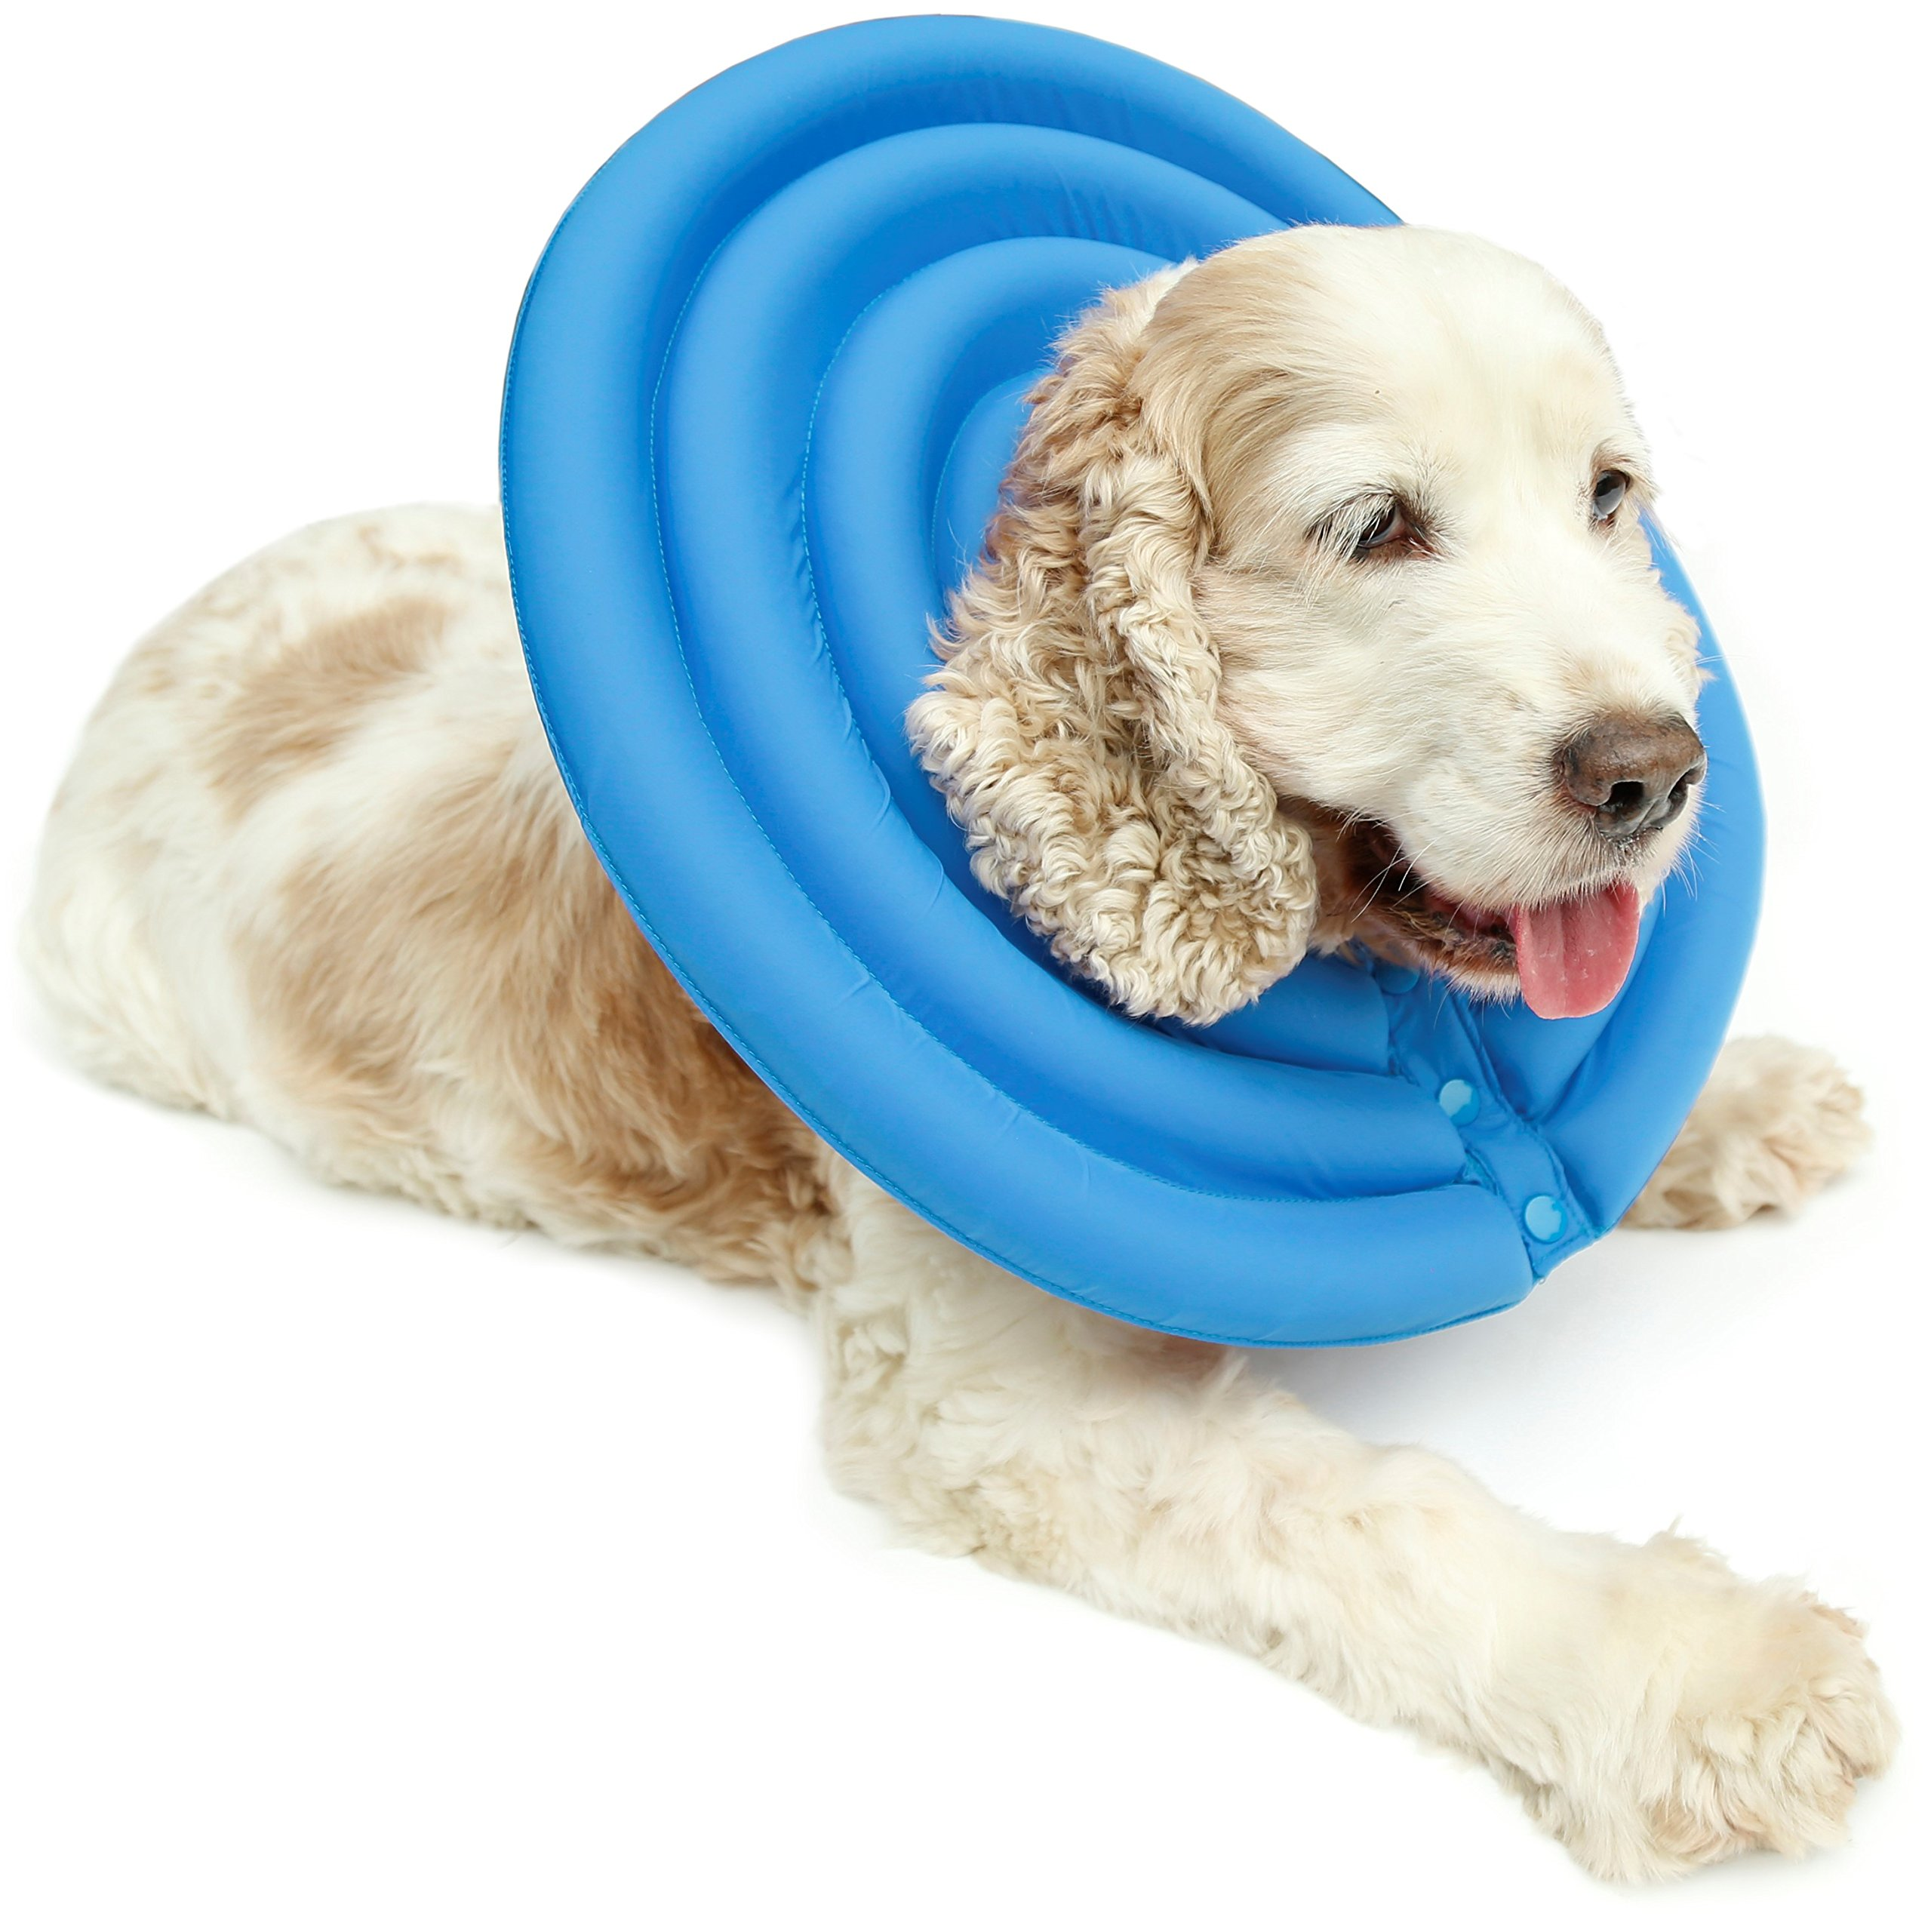 UsefulThingy Dog Recovery Collar - Soft Comfy Cone E-Collar After Surgery, Anti-Bite/Lick - for Cats Too, Quicker Healing - 4 Sizes, 2 Colors (M, Light Blue) by UsefulThingy